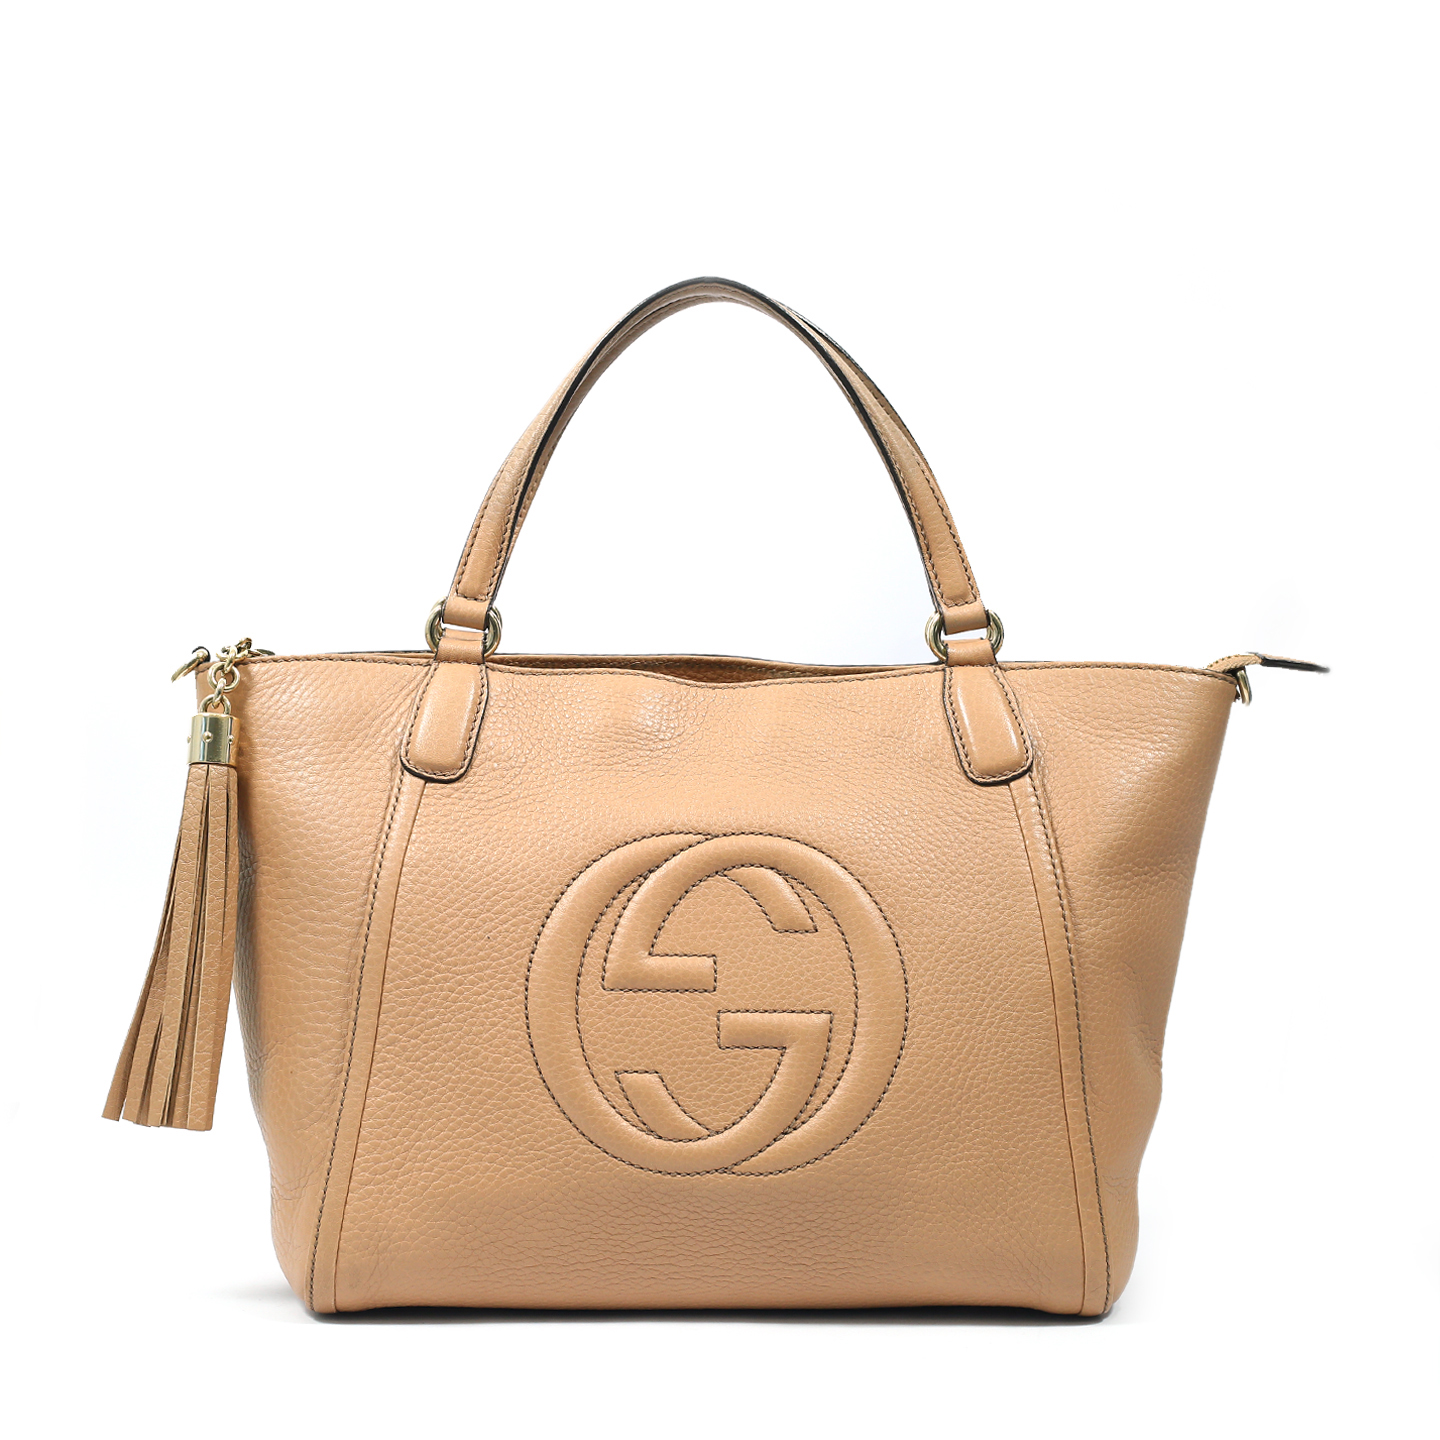 Gucci Pebbled Leather Small Soho Top Handle Bag (01)